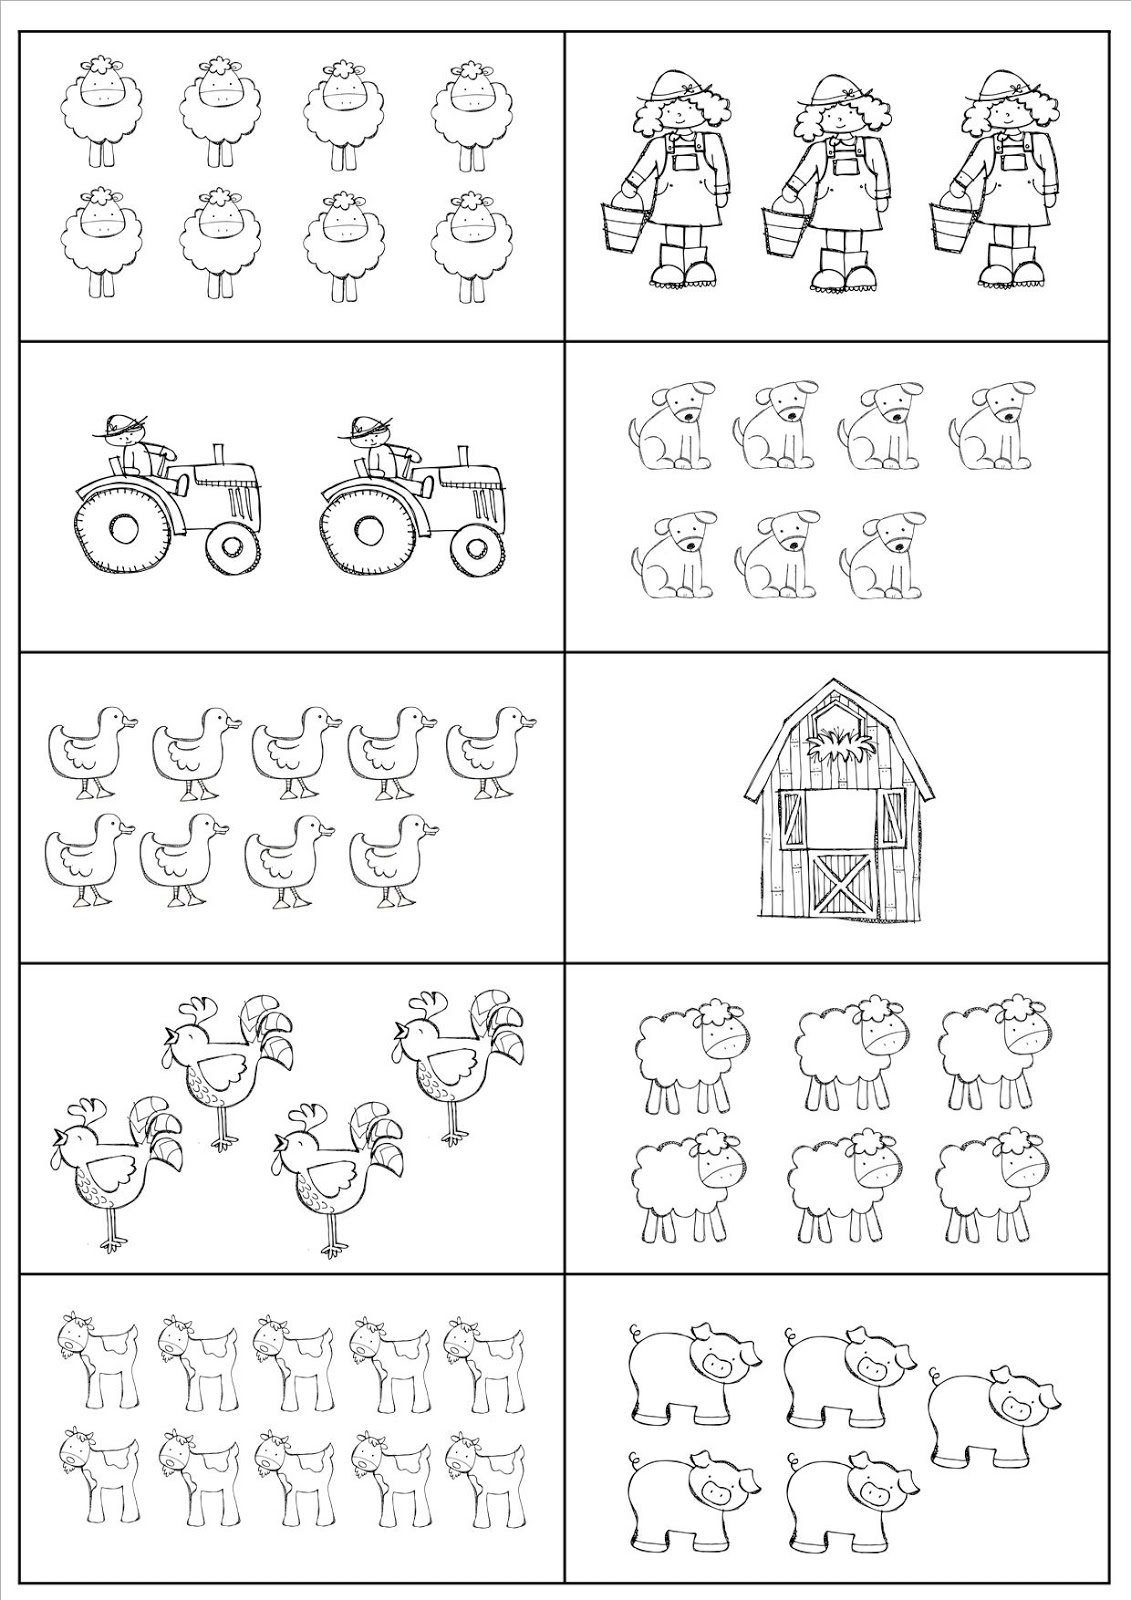 Numbers 1 10 clipart black and white royalty free download Numbers 1 10 clipart black and white - ClipartFest royalty free download